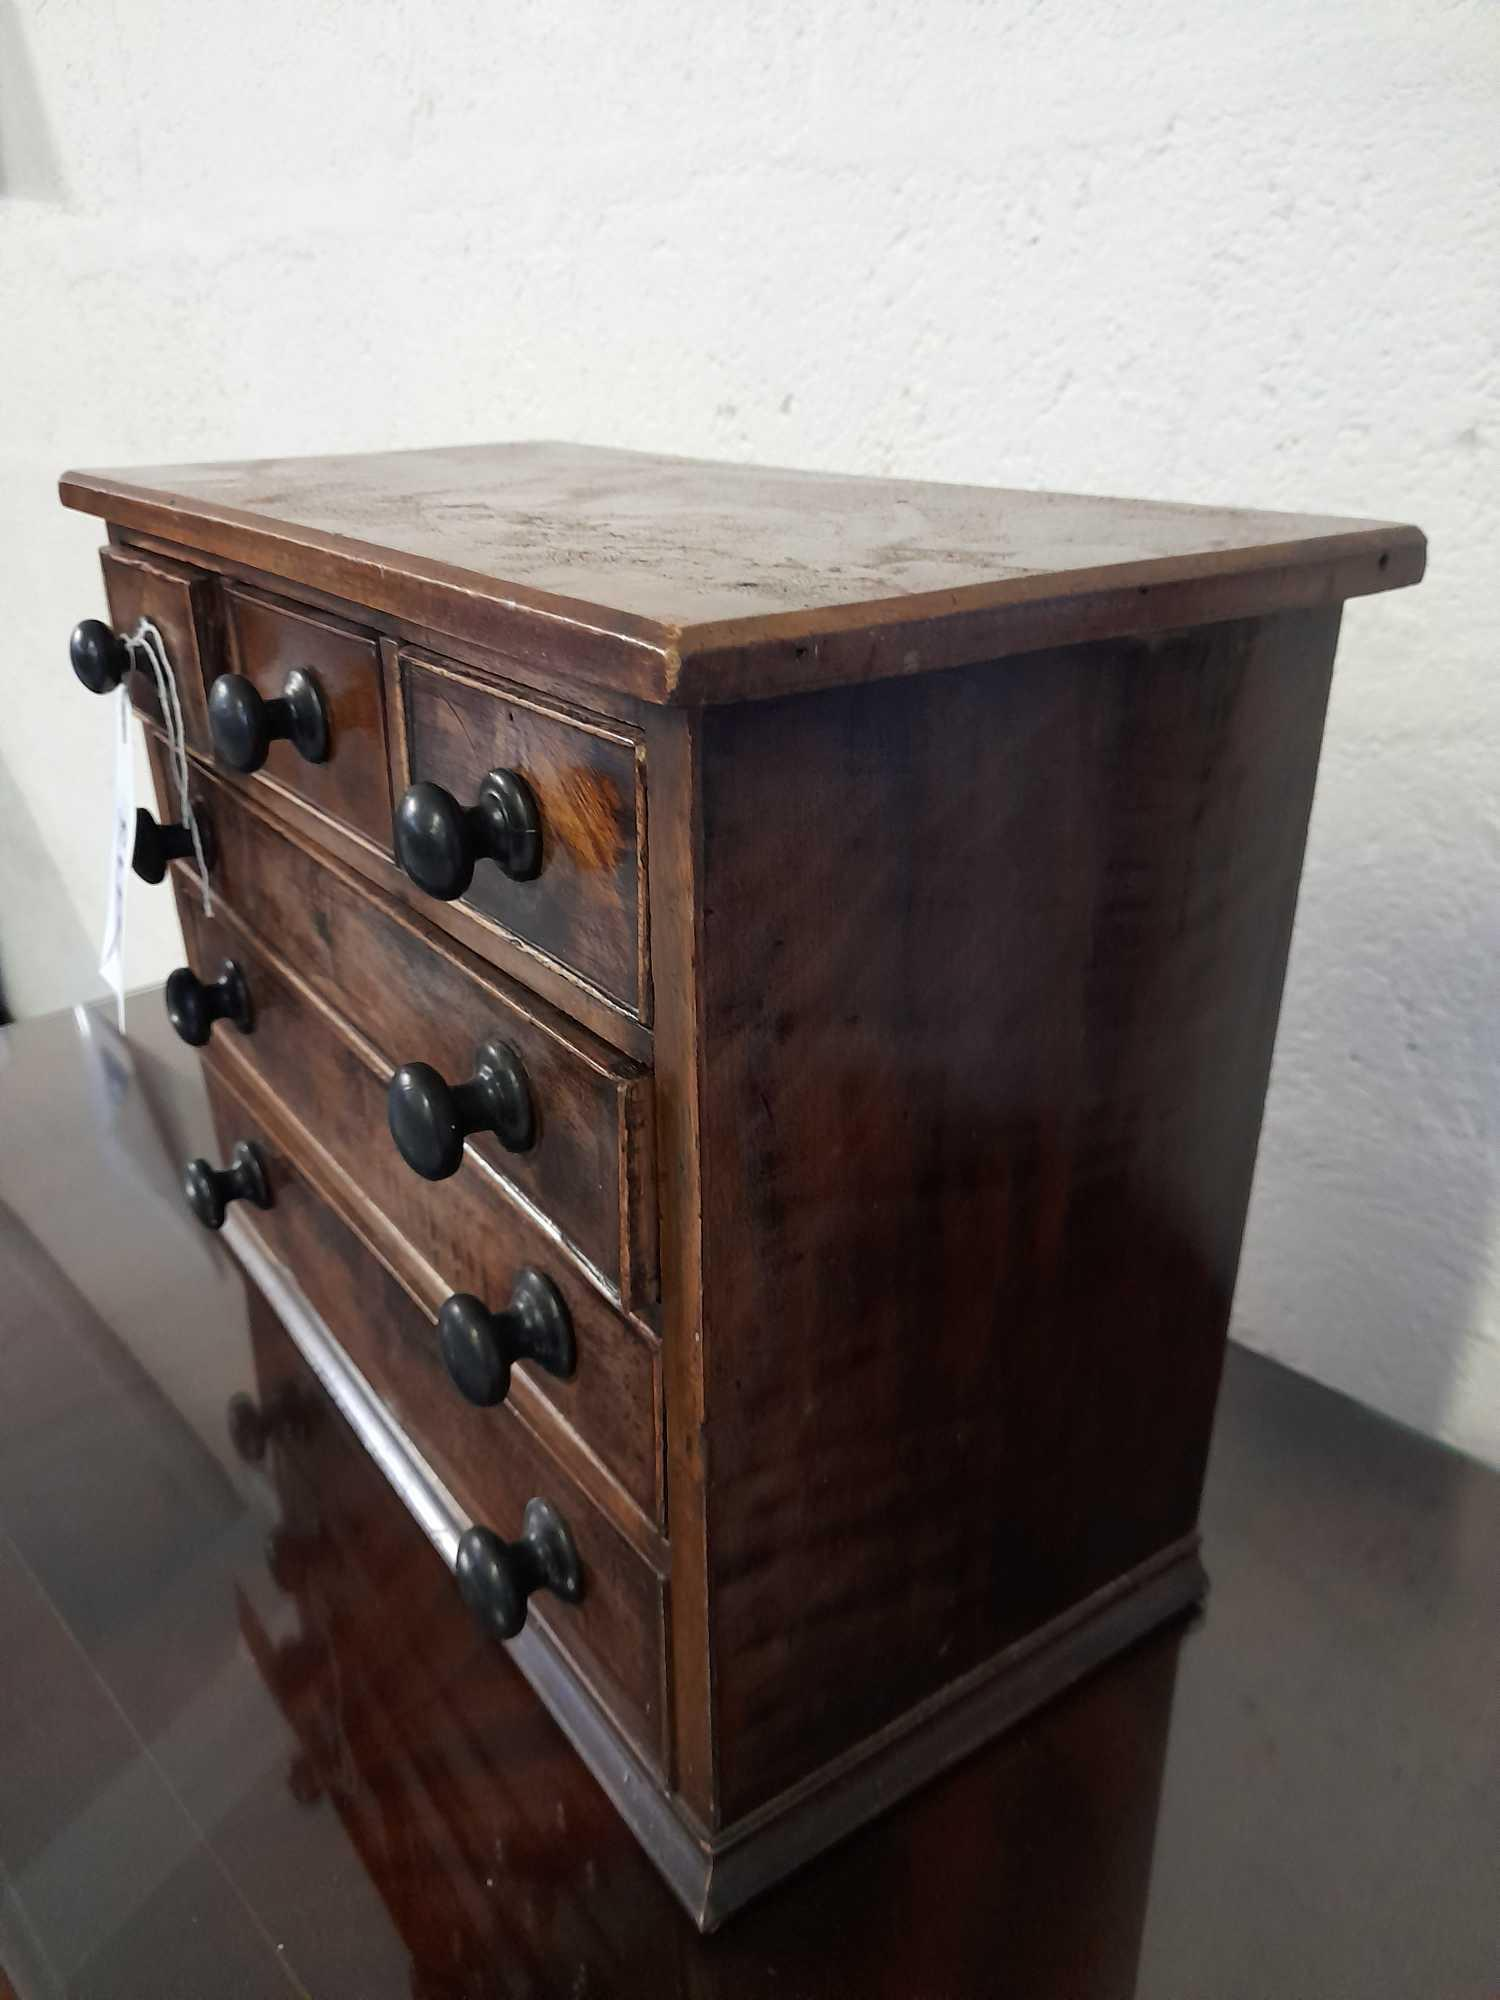 VICTORIAN MAHOGANY MINIATURE CHEST DRAWERS (AF) - Image 2 of 2